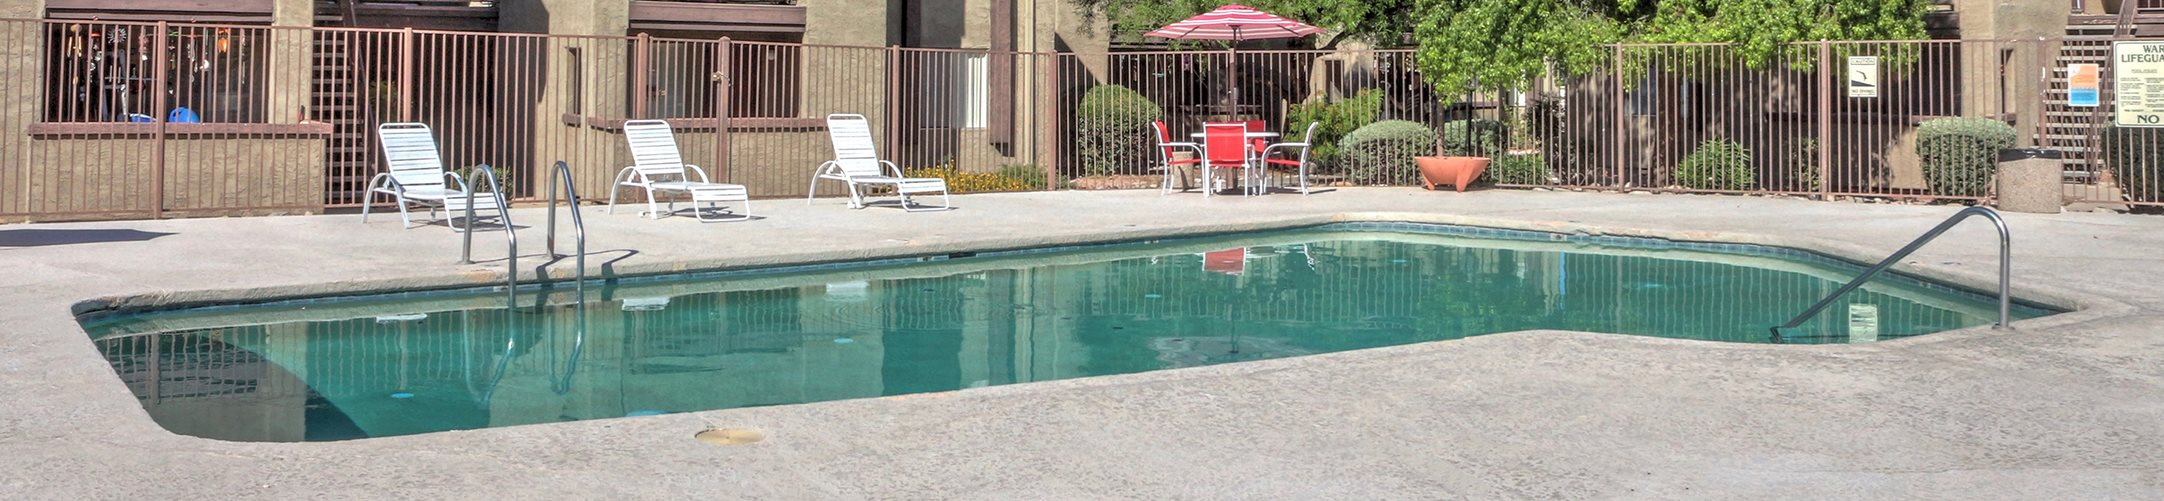 Pool, pool patio, exterior and landscaping at Woodridge Apartments in Tucson, AZ